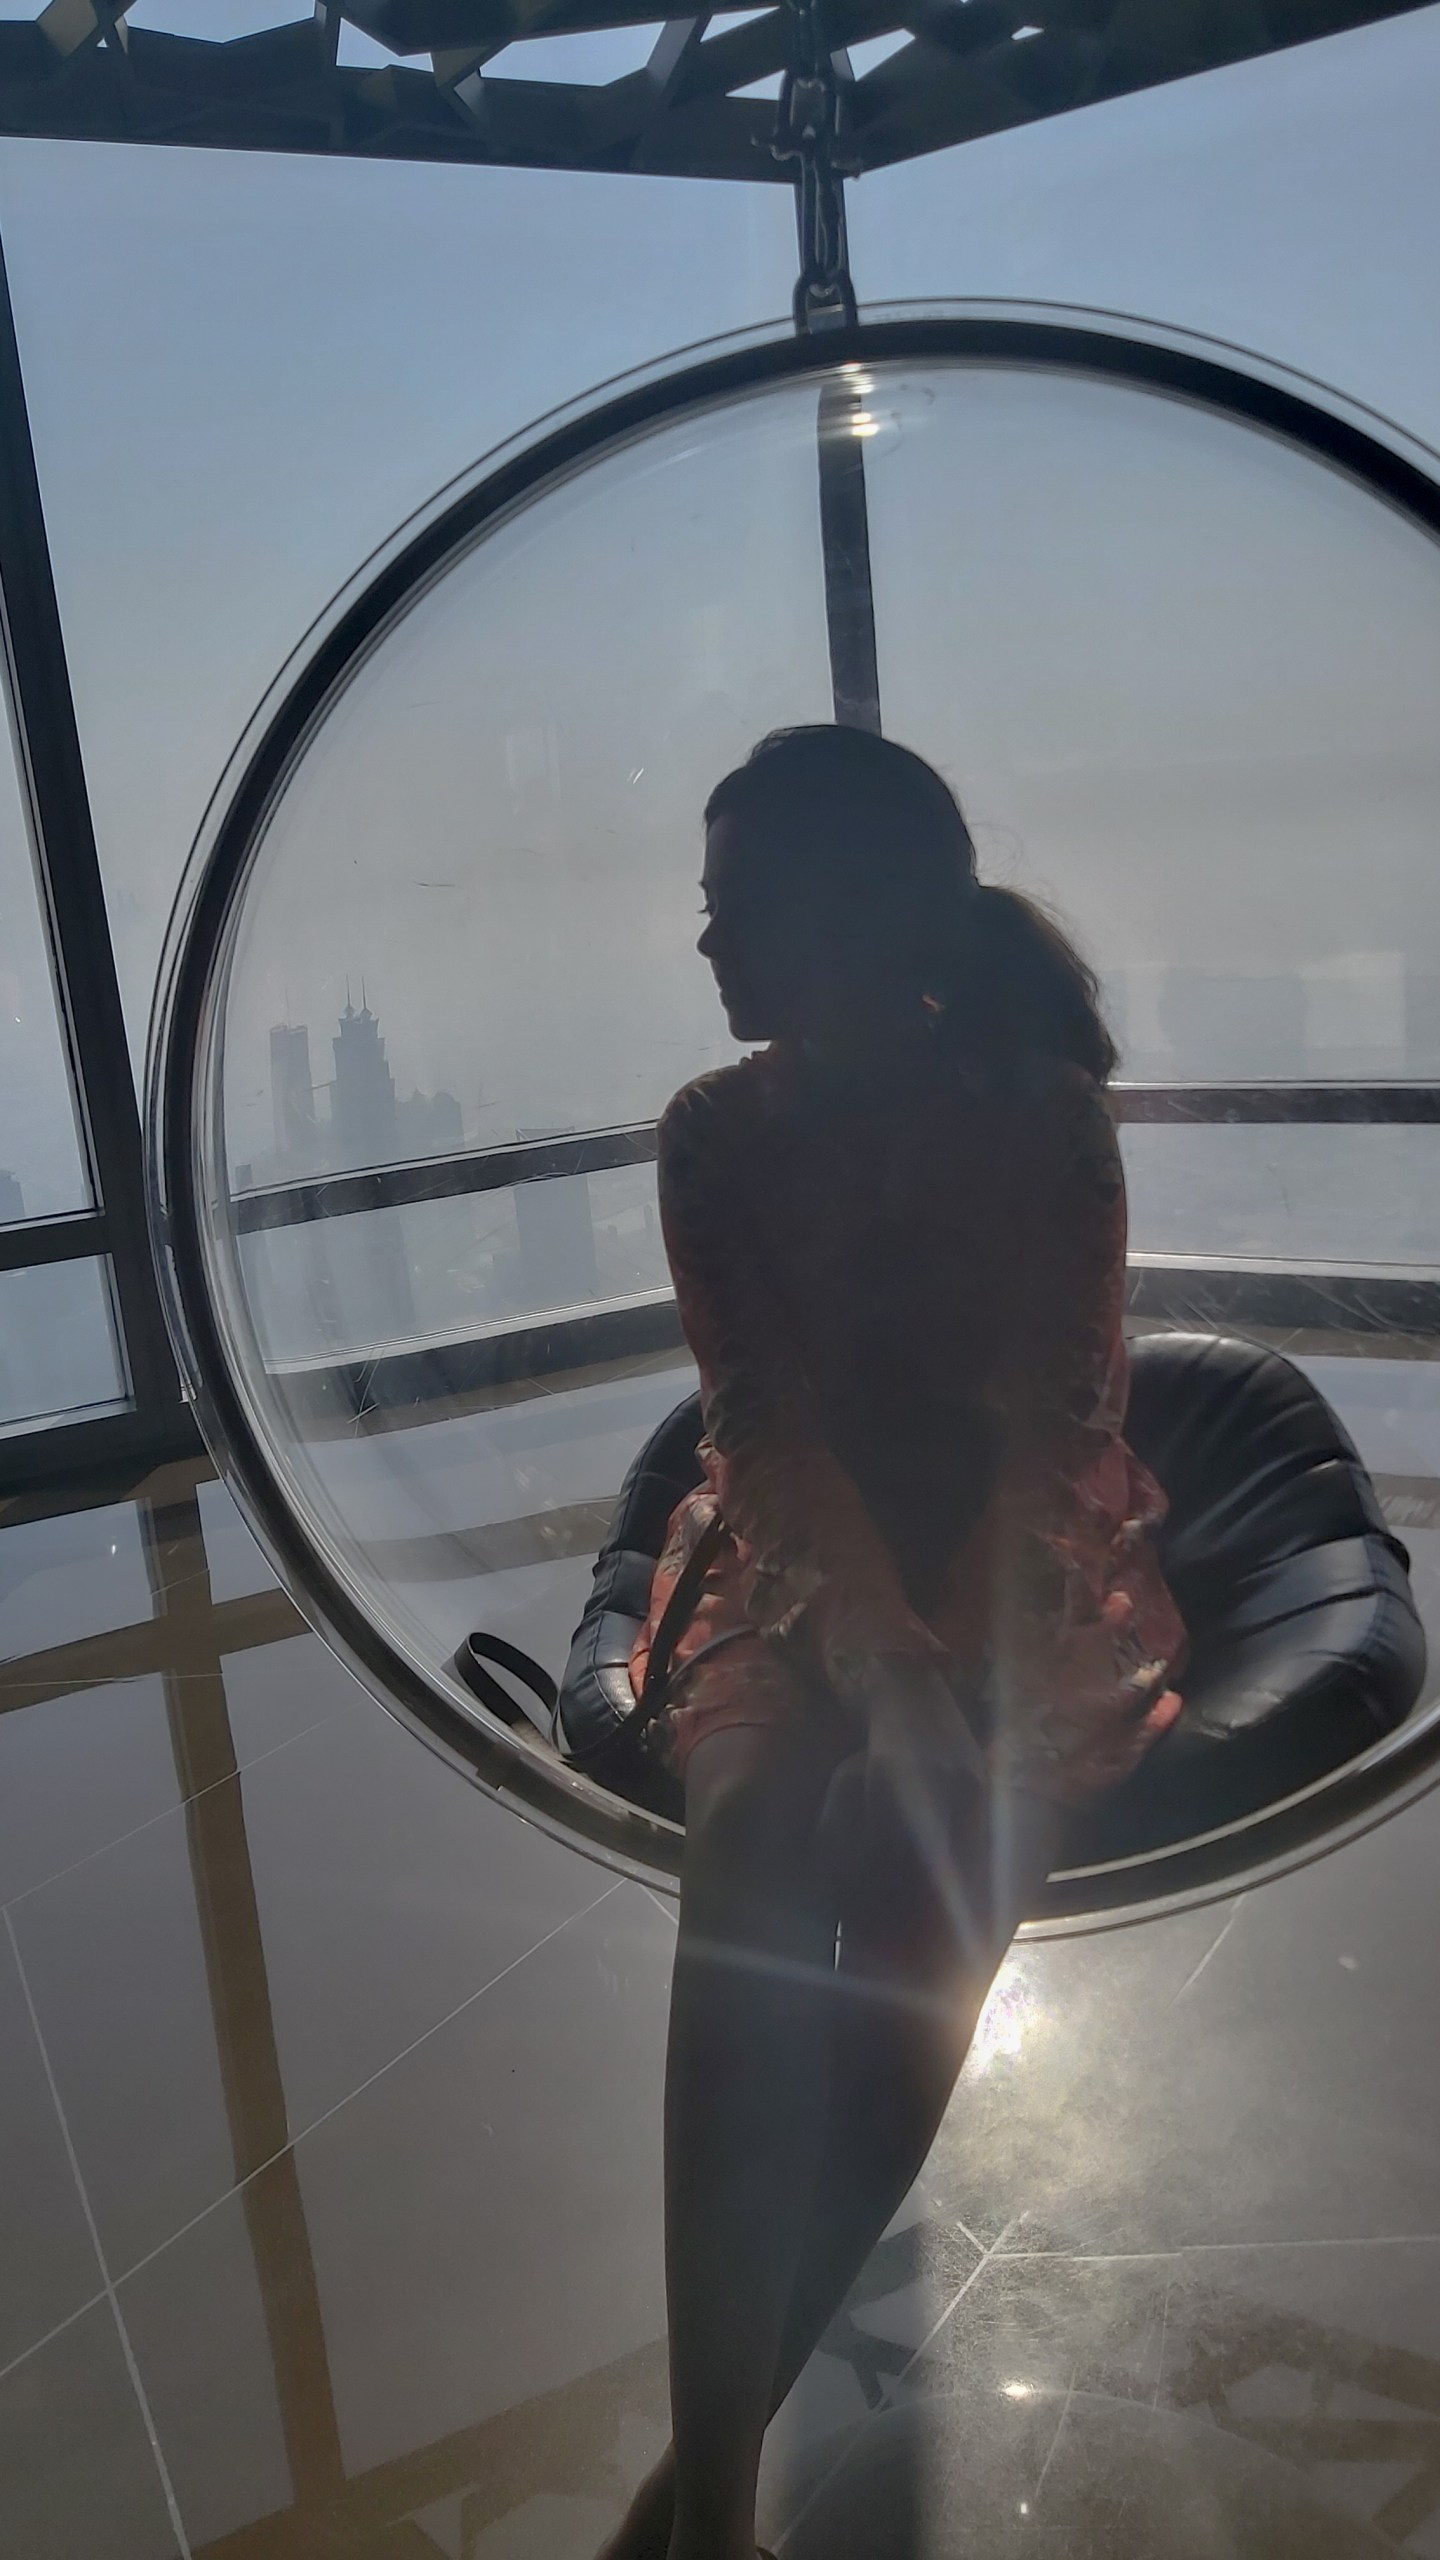 my marvelous burj khalifa experience - from the inside